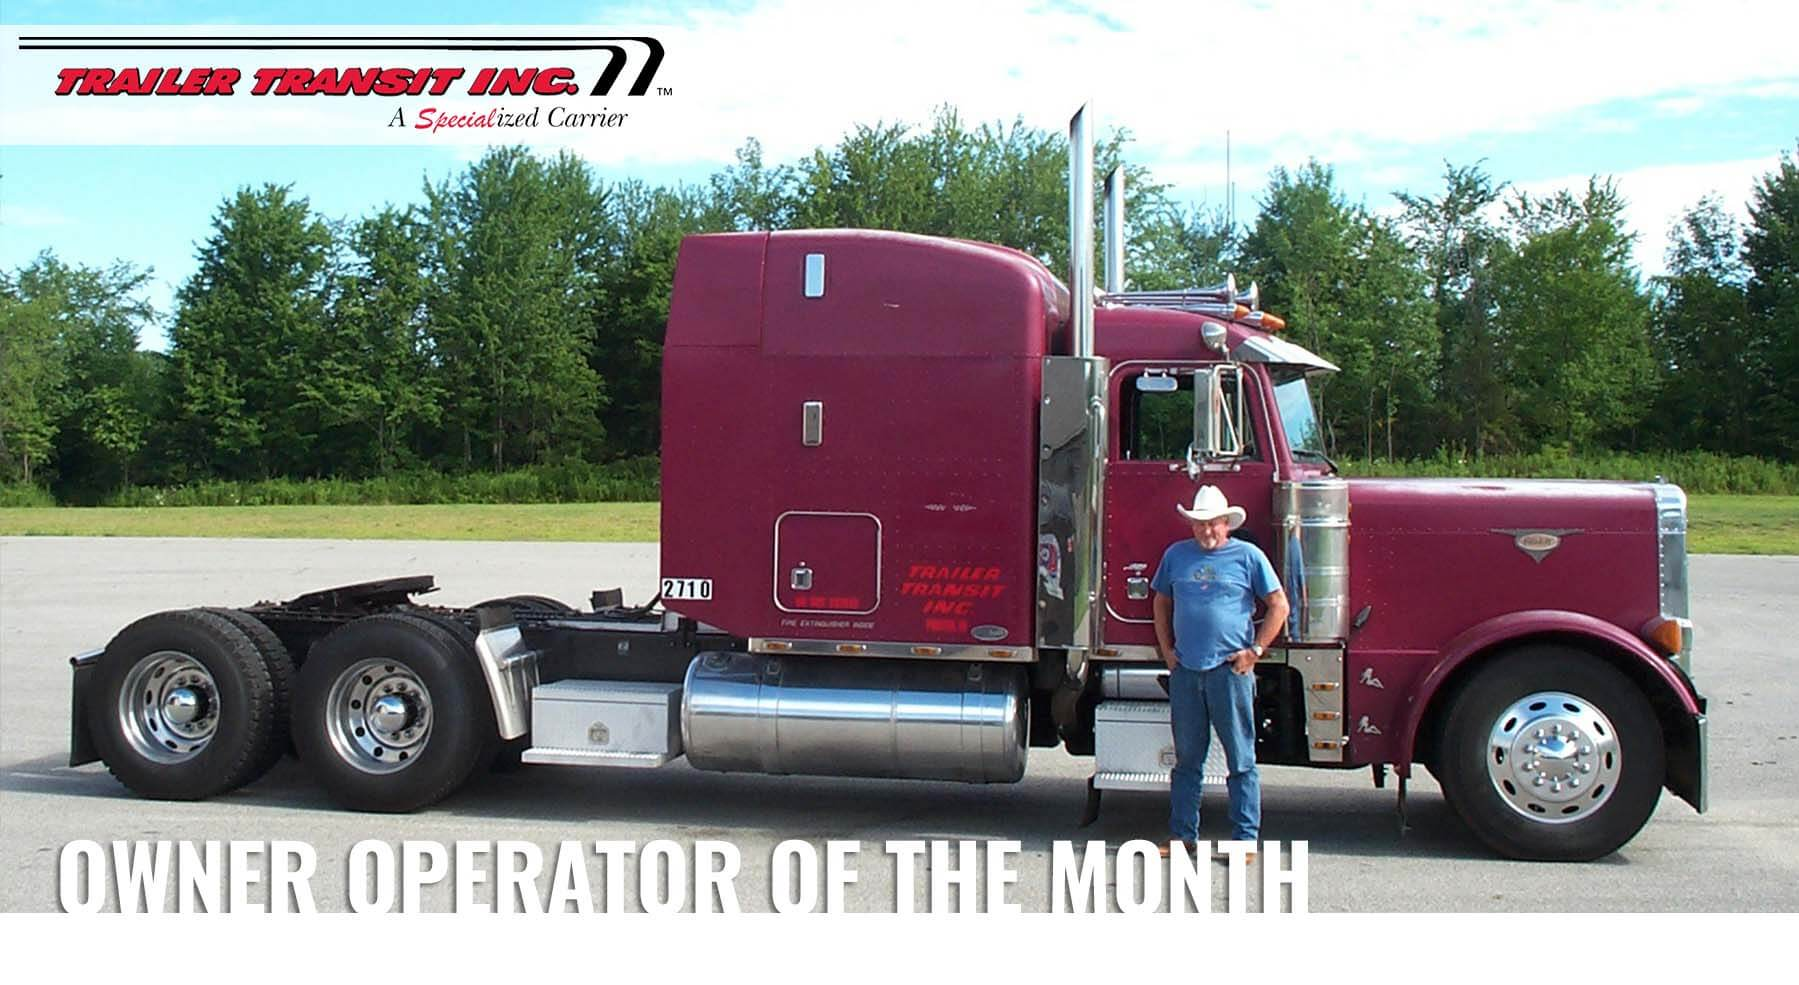 Congratulations to our October Owner Operator of the Month – Wayne, Unit #2710